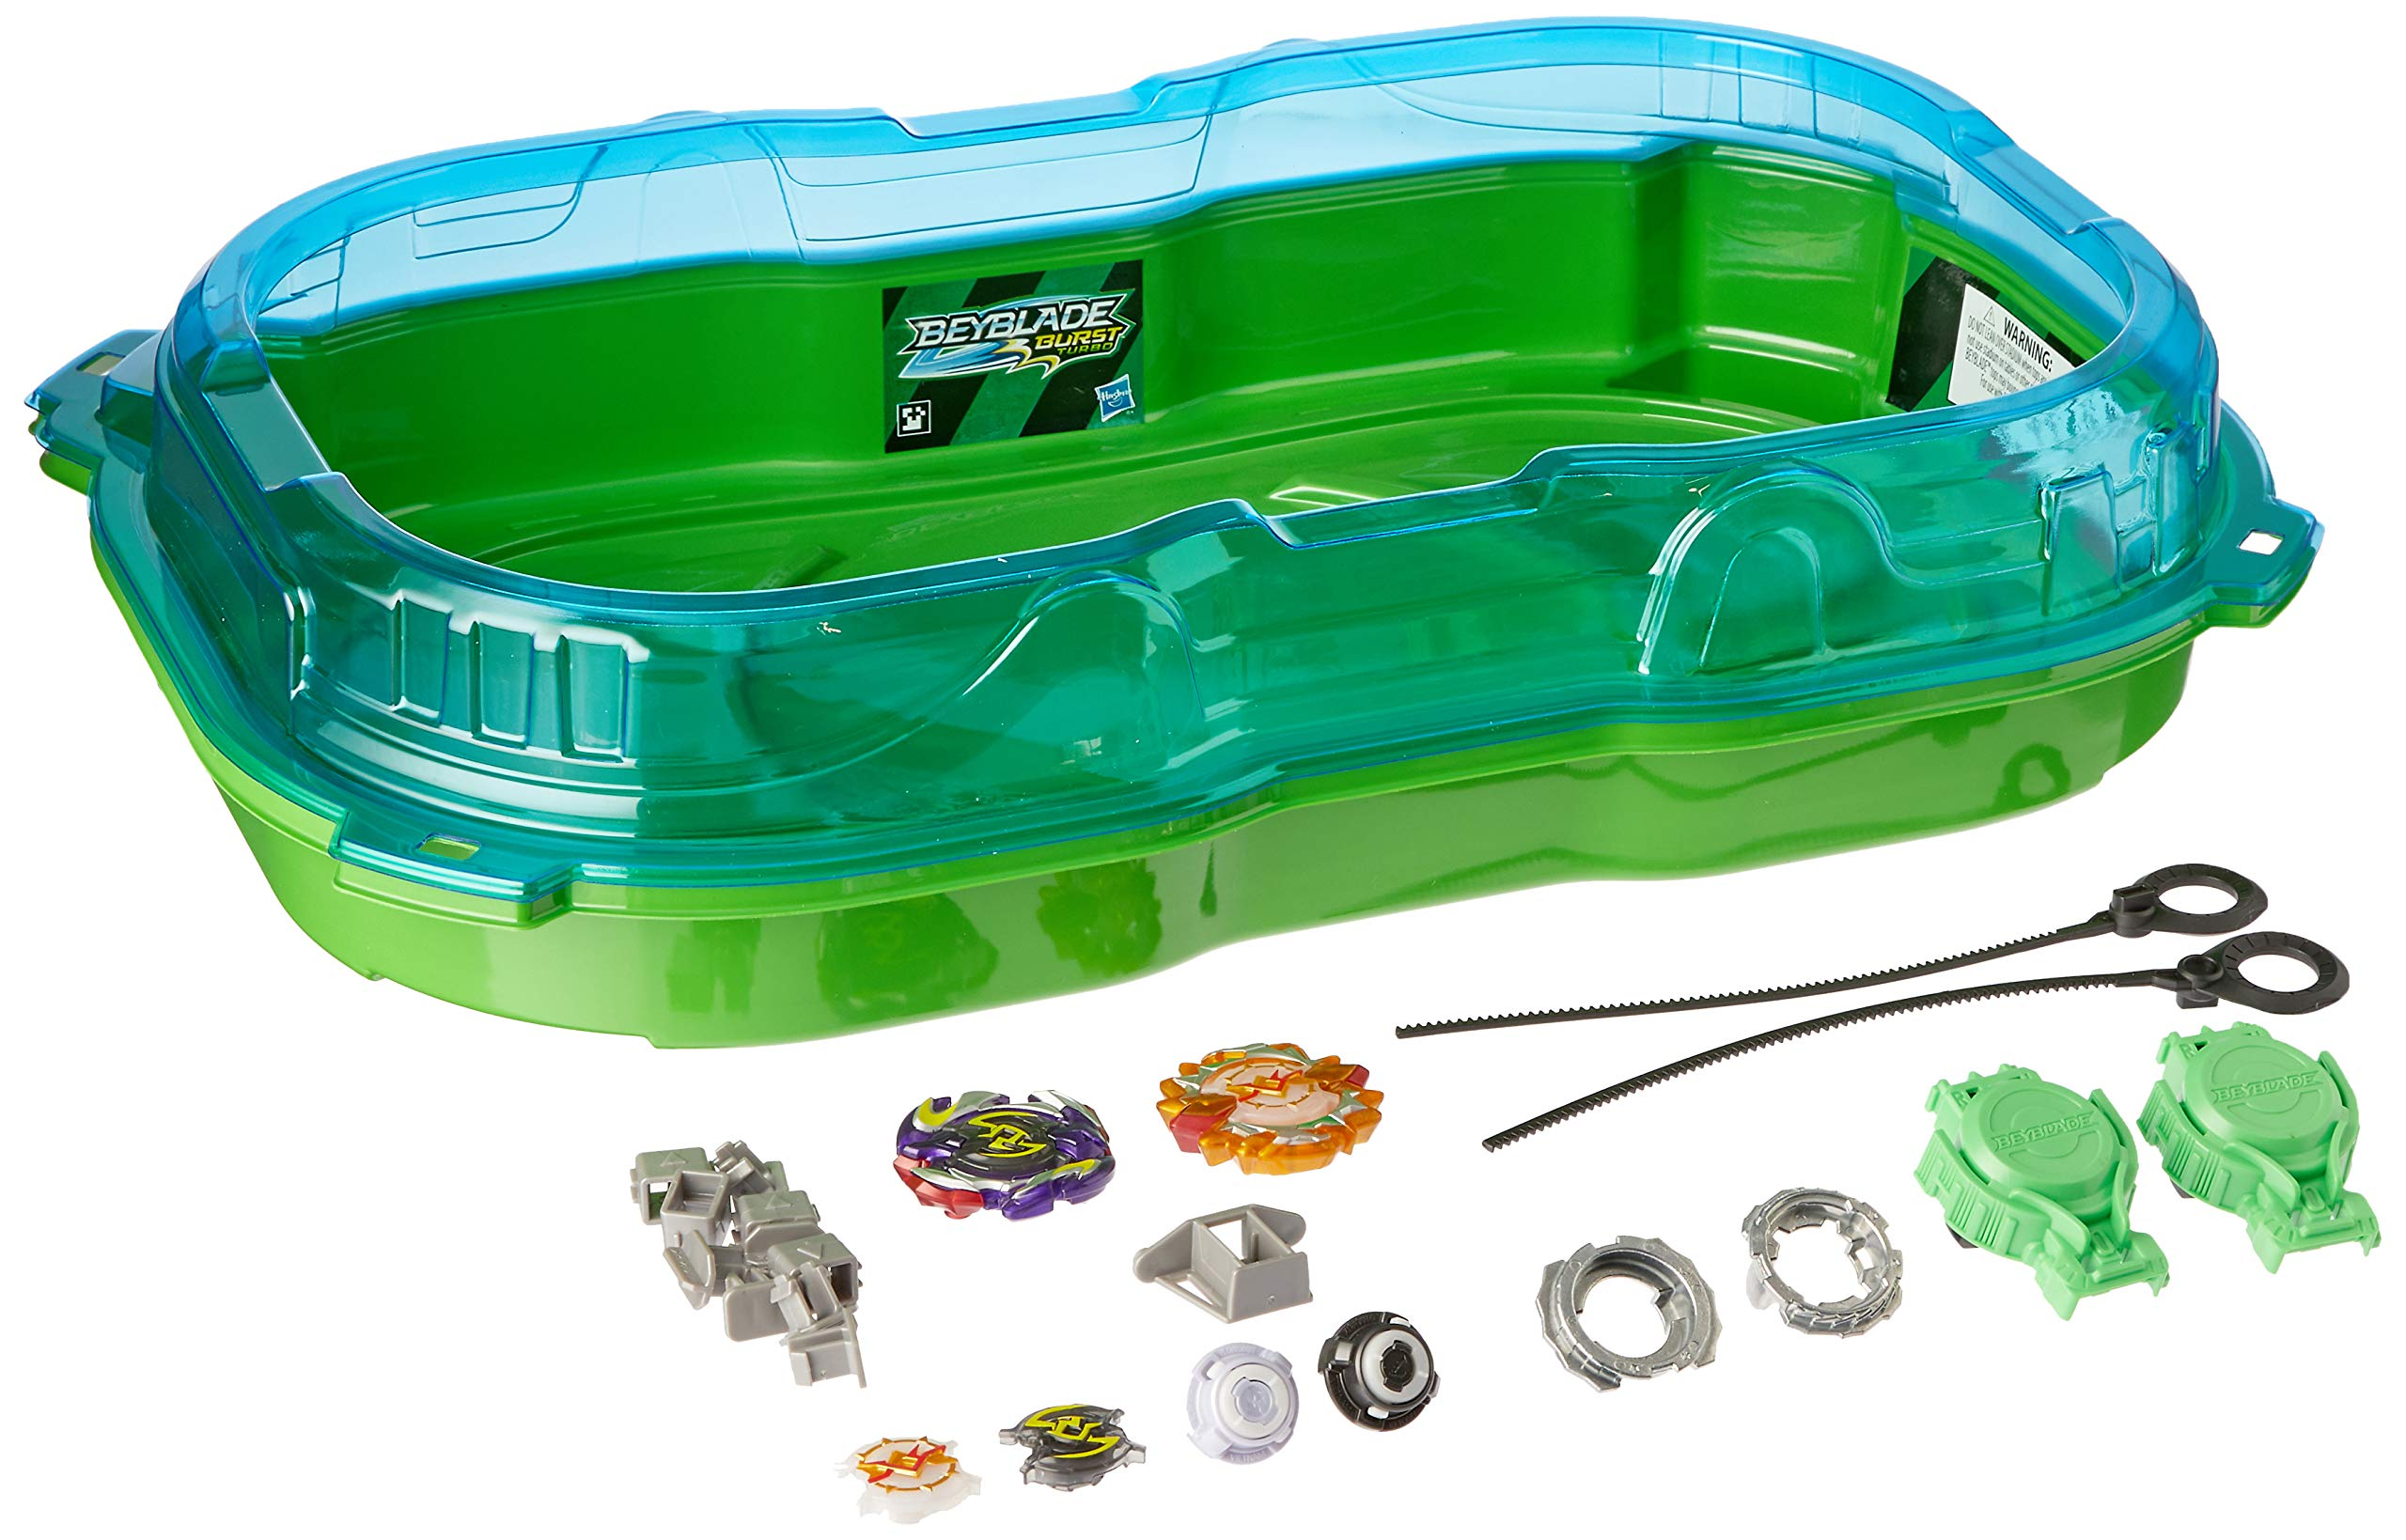 BEYBLADE Burst Turbo Slingshock Cross Collision Battle Set -- Complete Set with Burst Beystadium, Battling Tops, & Launchers -- Age 8+ by BEYBLADE